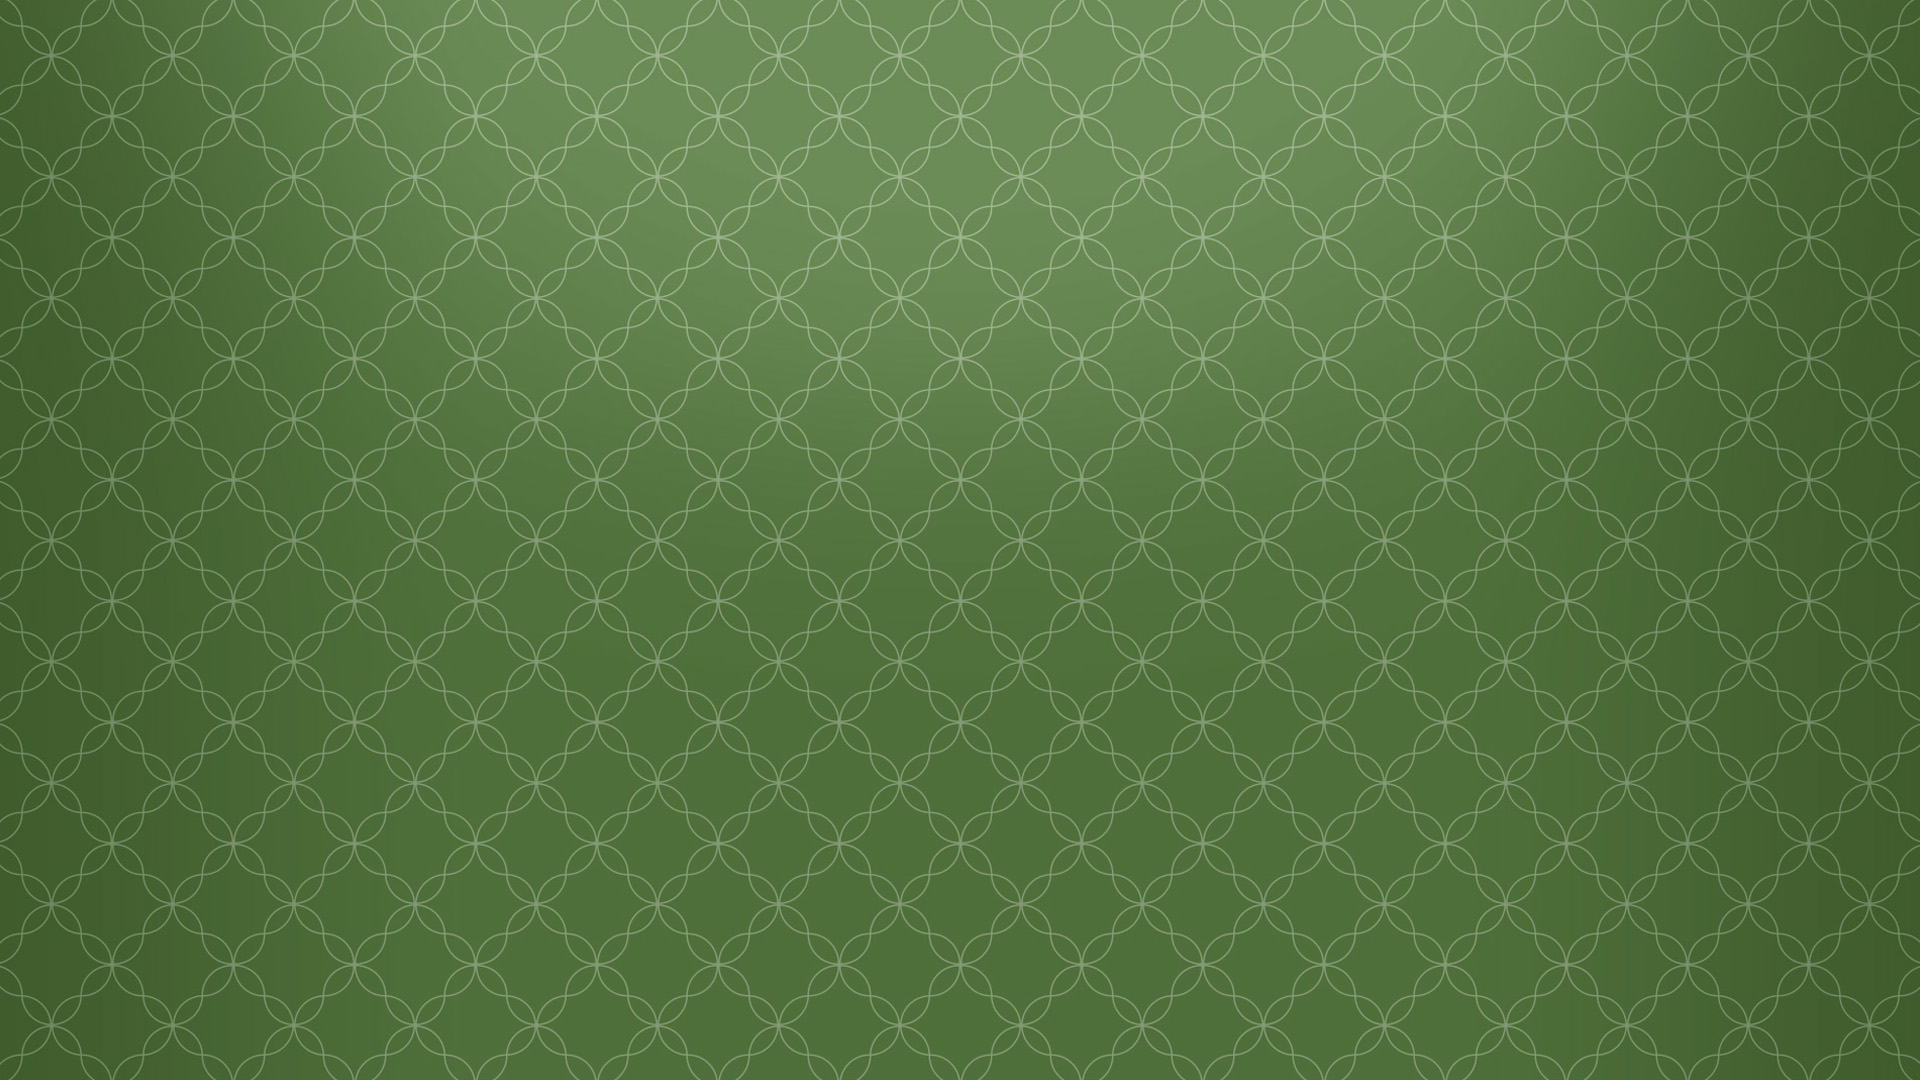 Samsung Galaxy 3d Wallpapers Free Download Download Olive Green Wallpaper Gallery